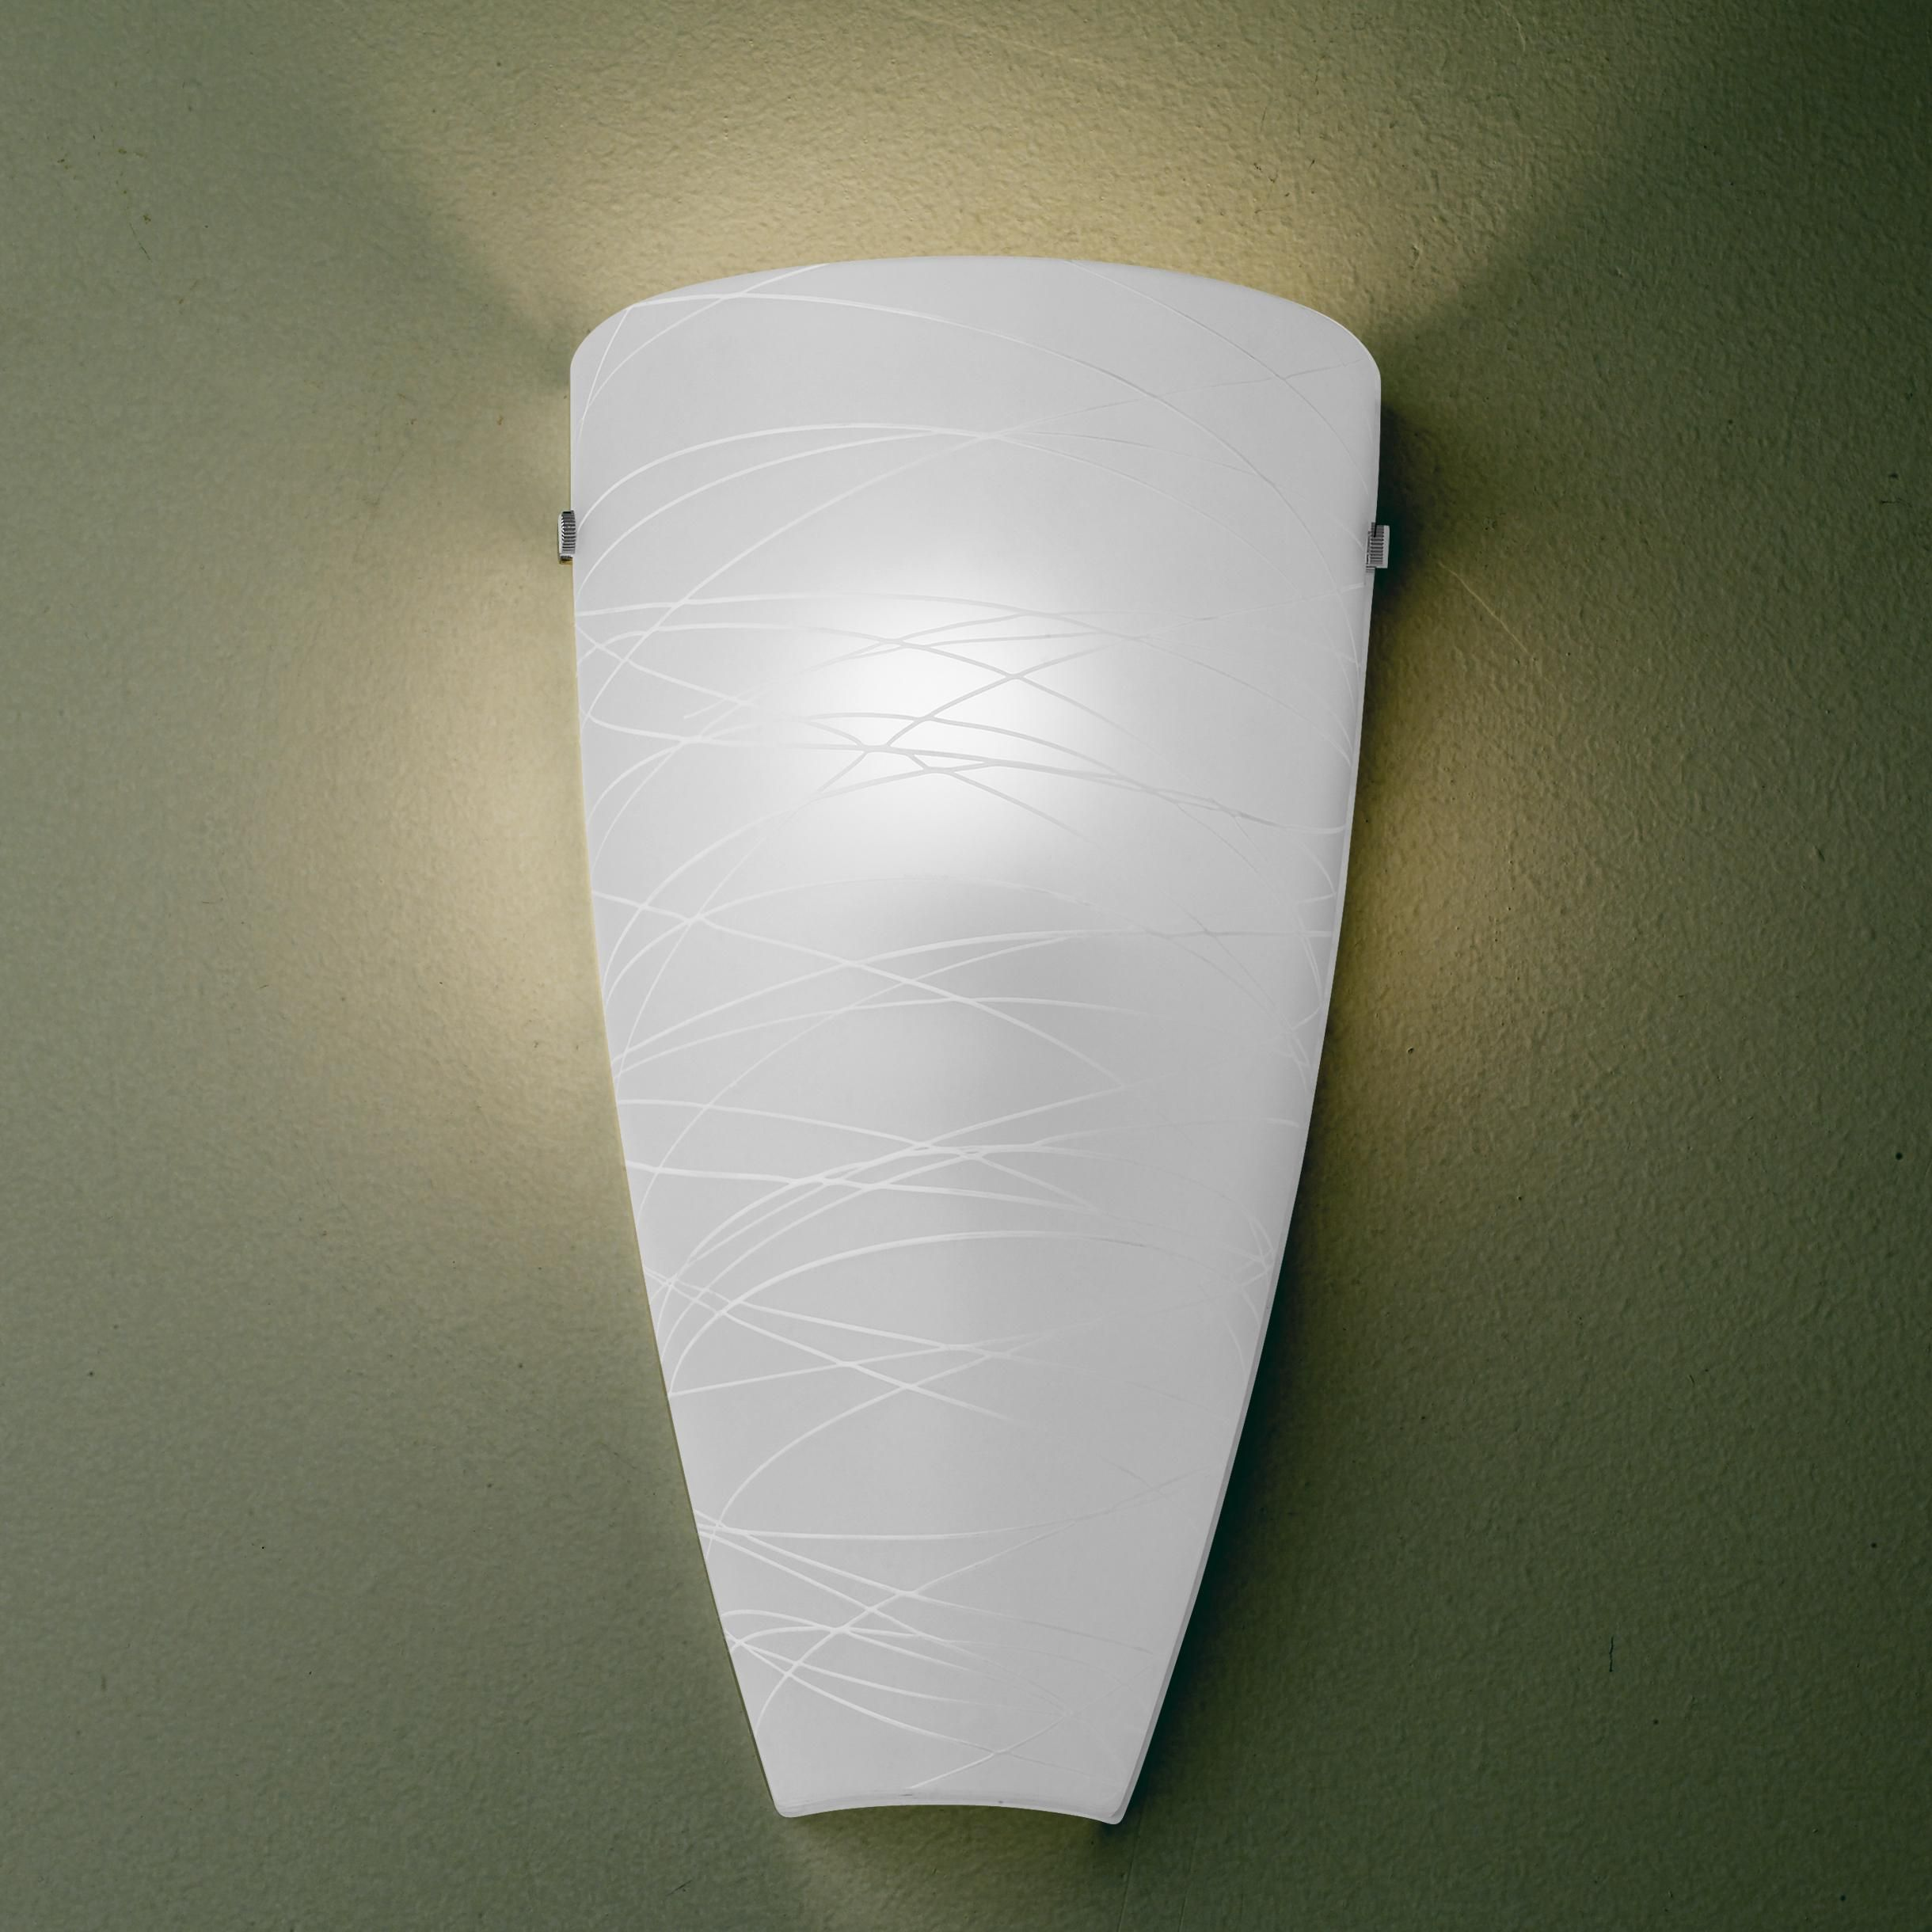 Art Glass Wall Sconce Possini Euro 13 1 4 Quoth White Striped Art Glass Wall Sconce